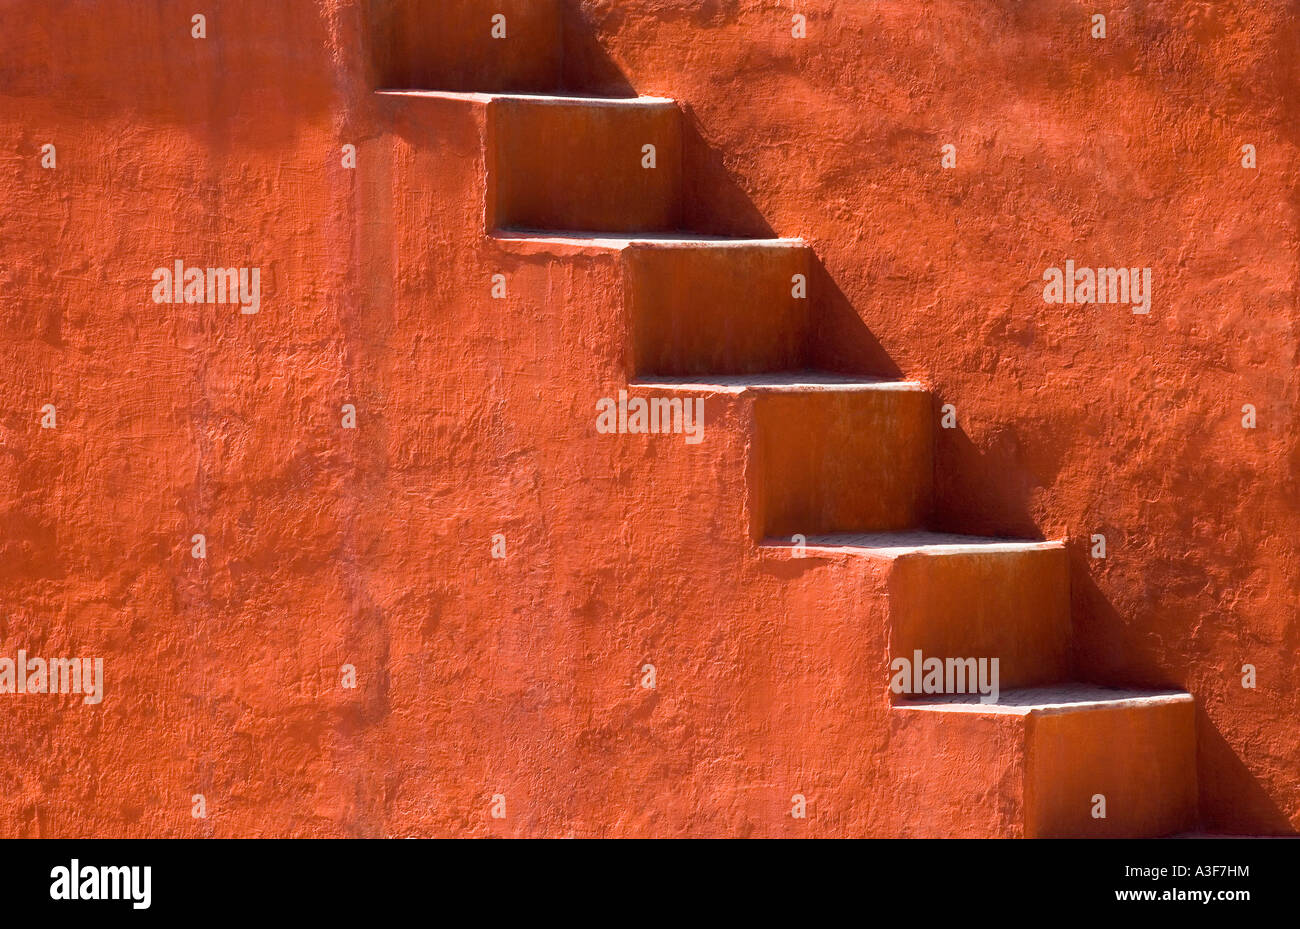 Operazioni su un edificio, Jantar Mantar, New Delhi, India Foto Stock